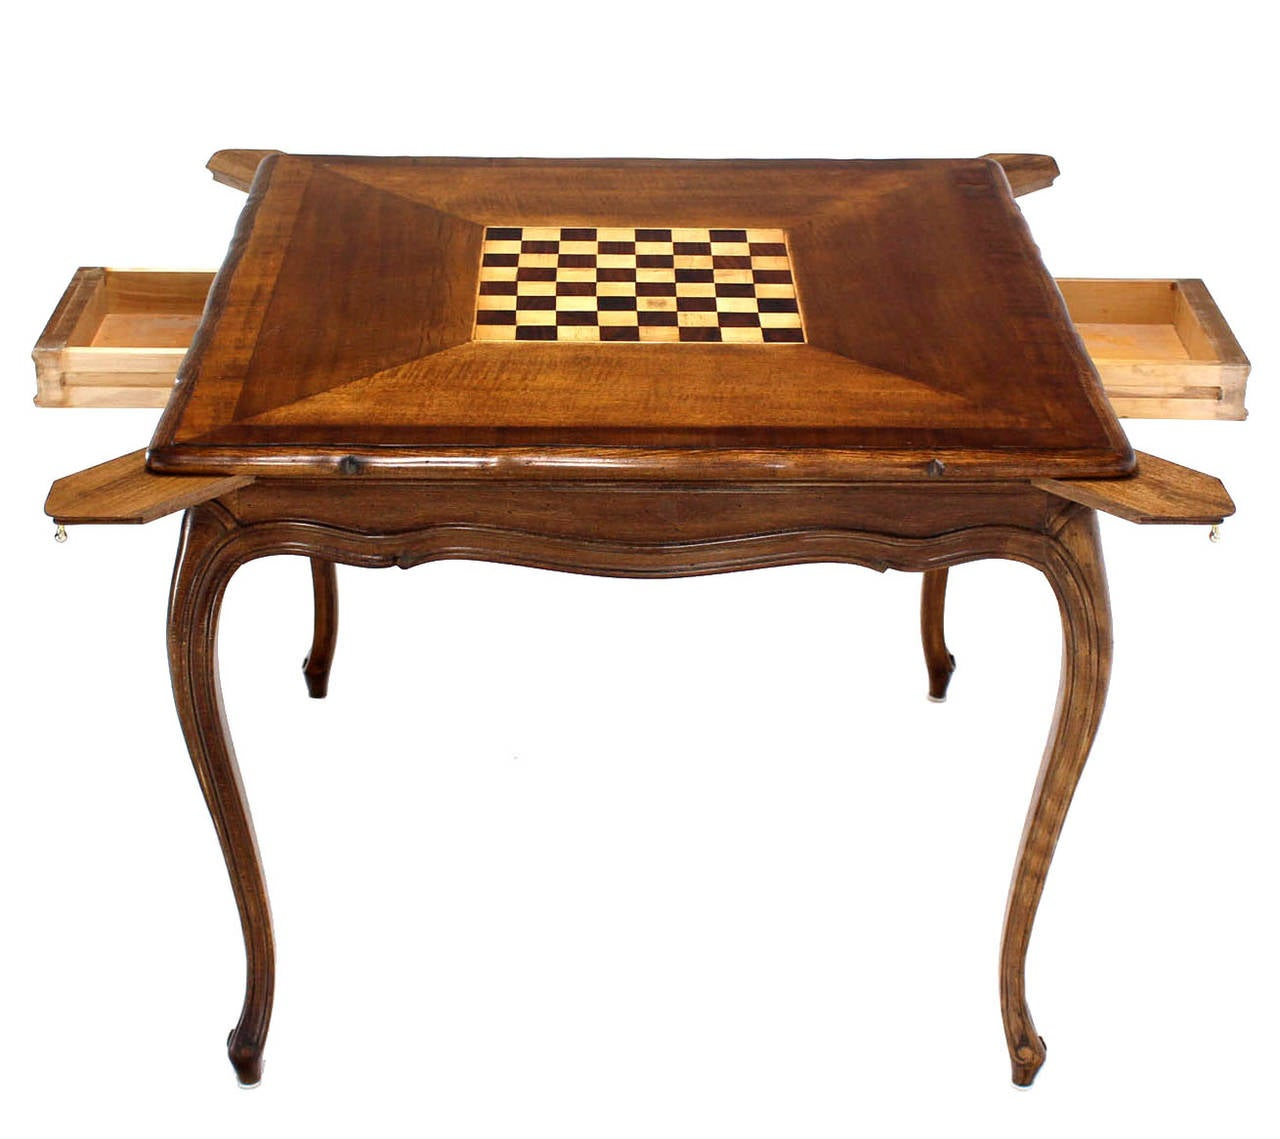 Walnut Game Table With Built In Chess Board At 1stdibs